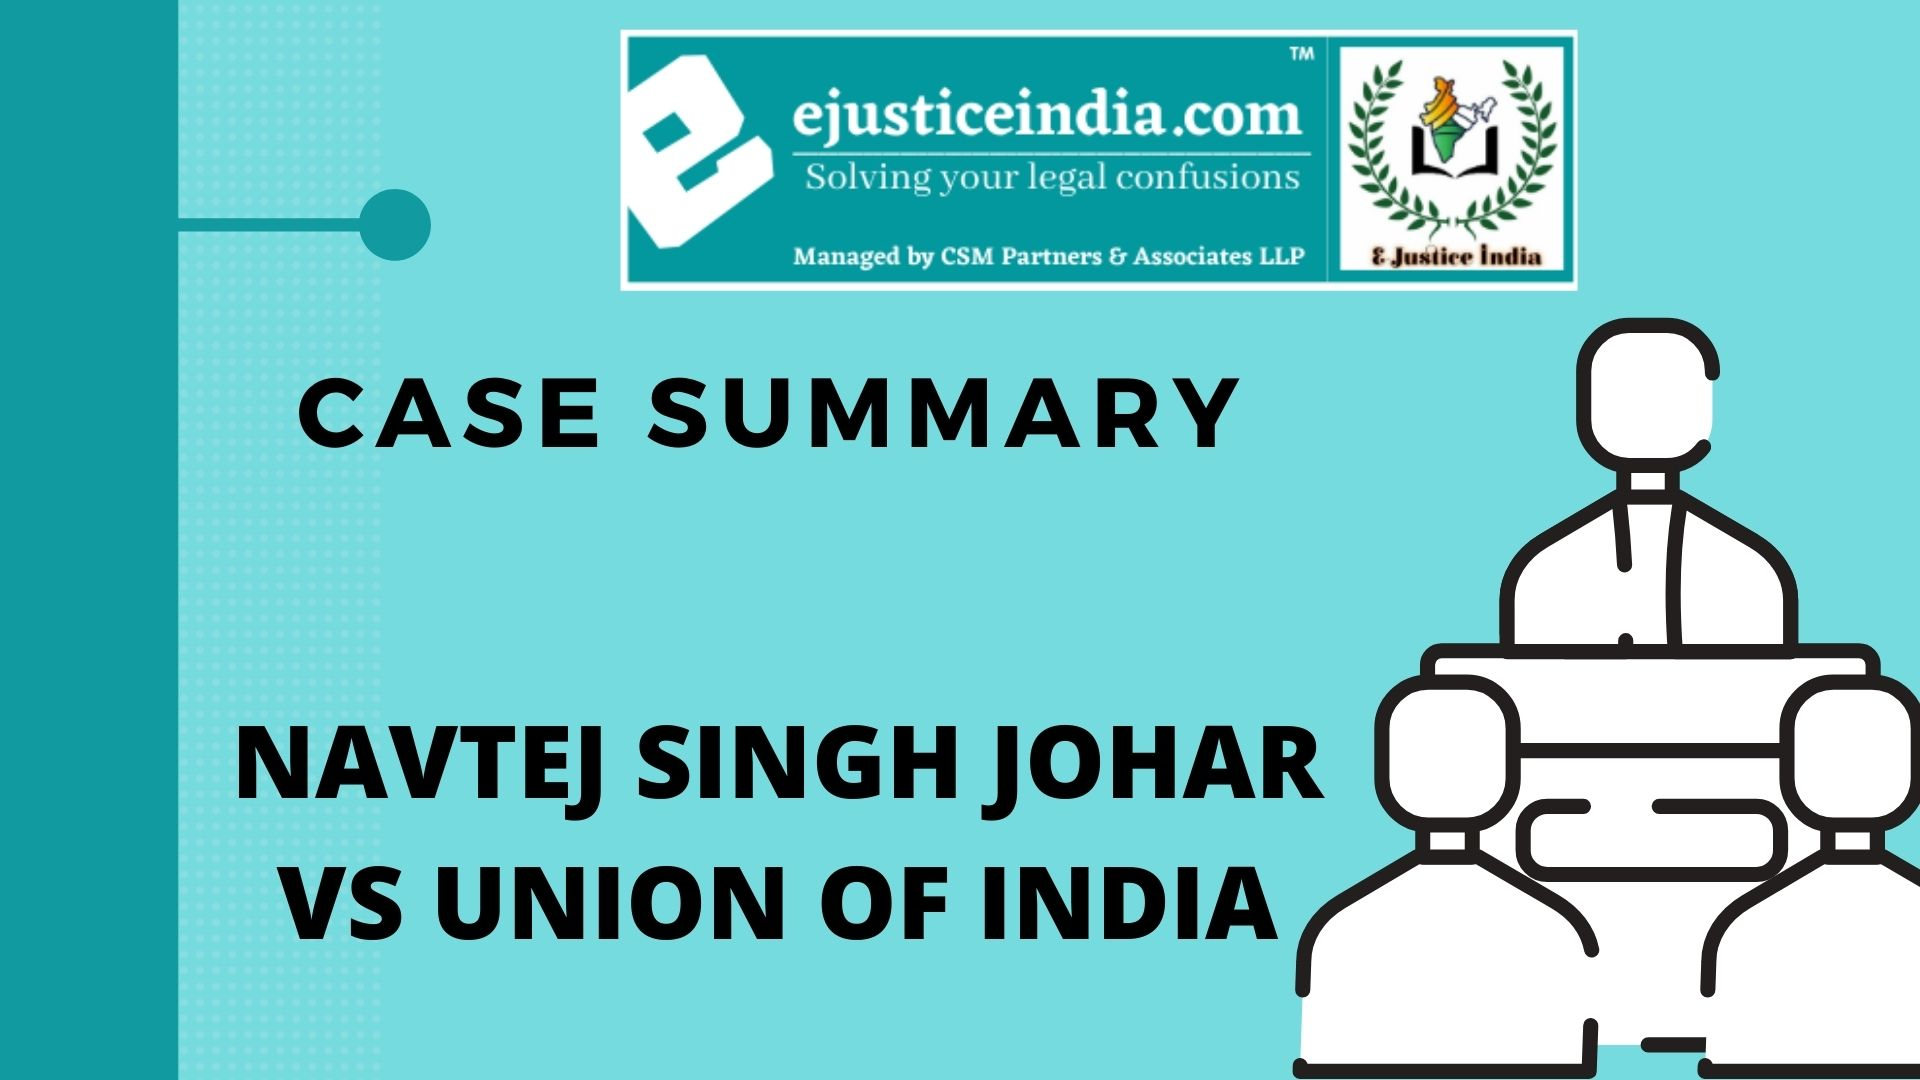 NAVTEJ SINGH JOHAR VS UNION OF INDIA